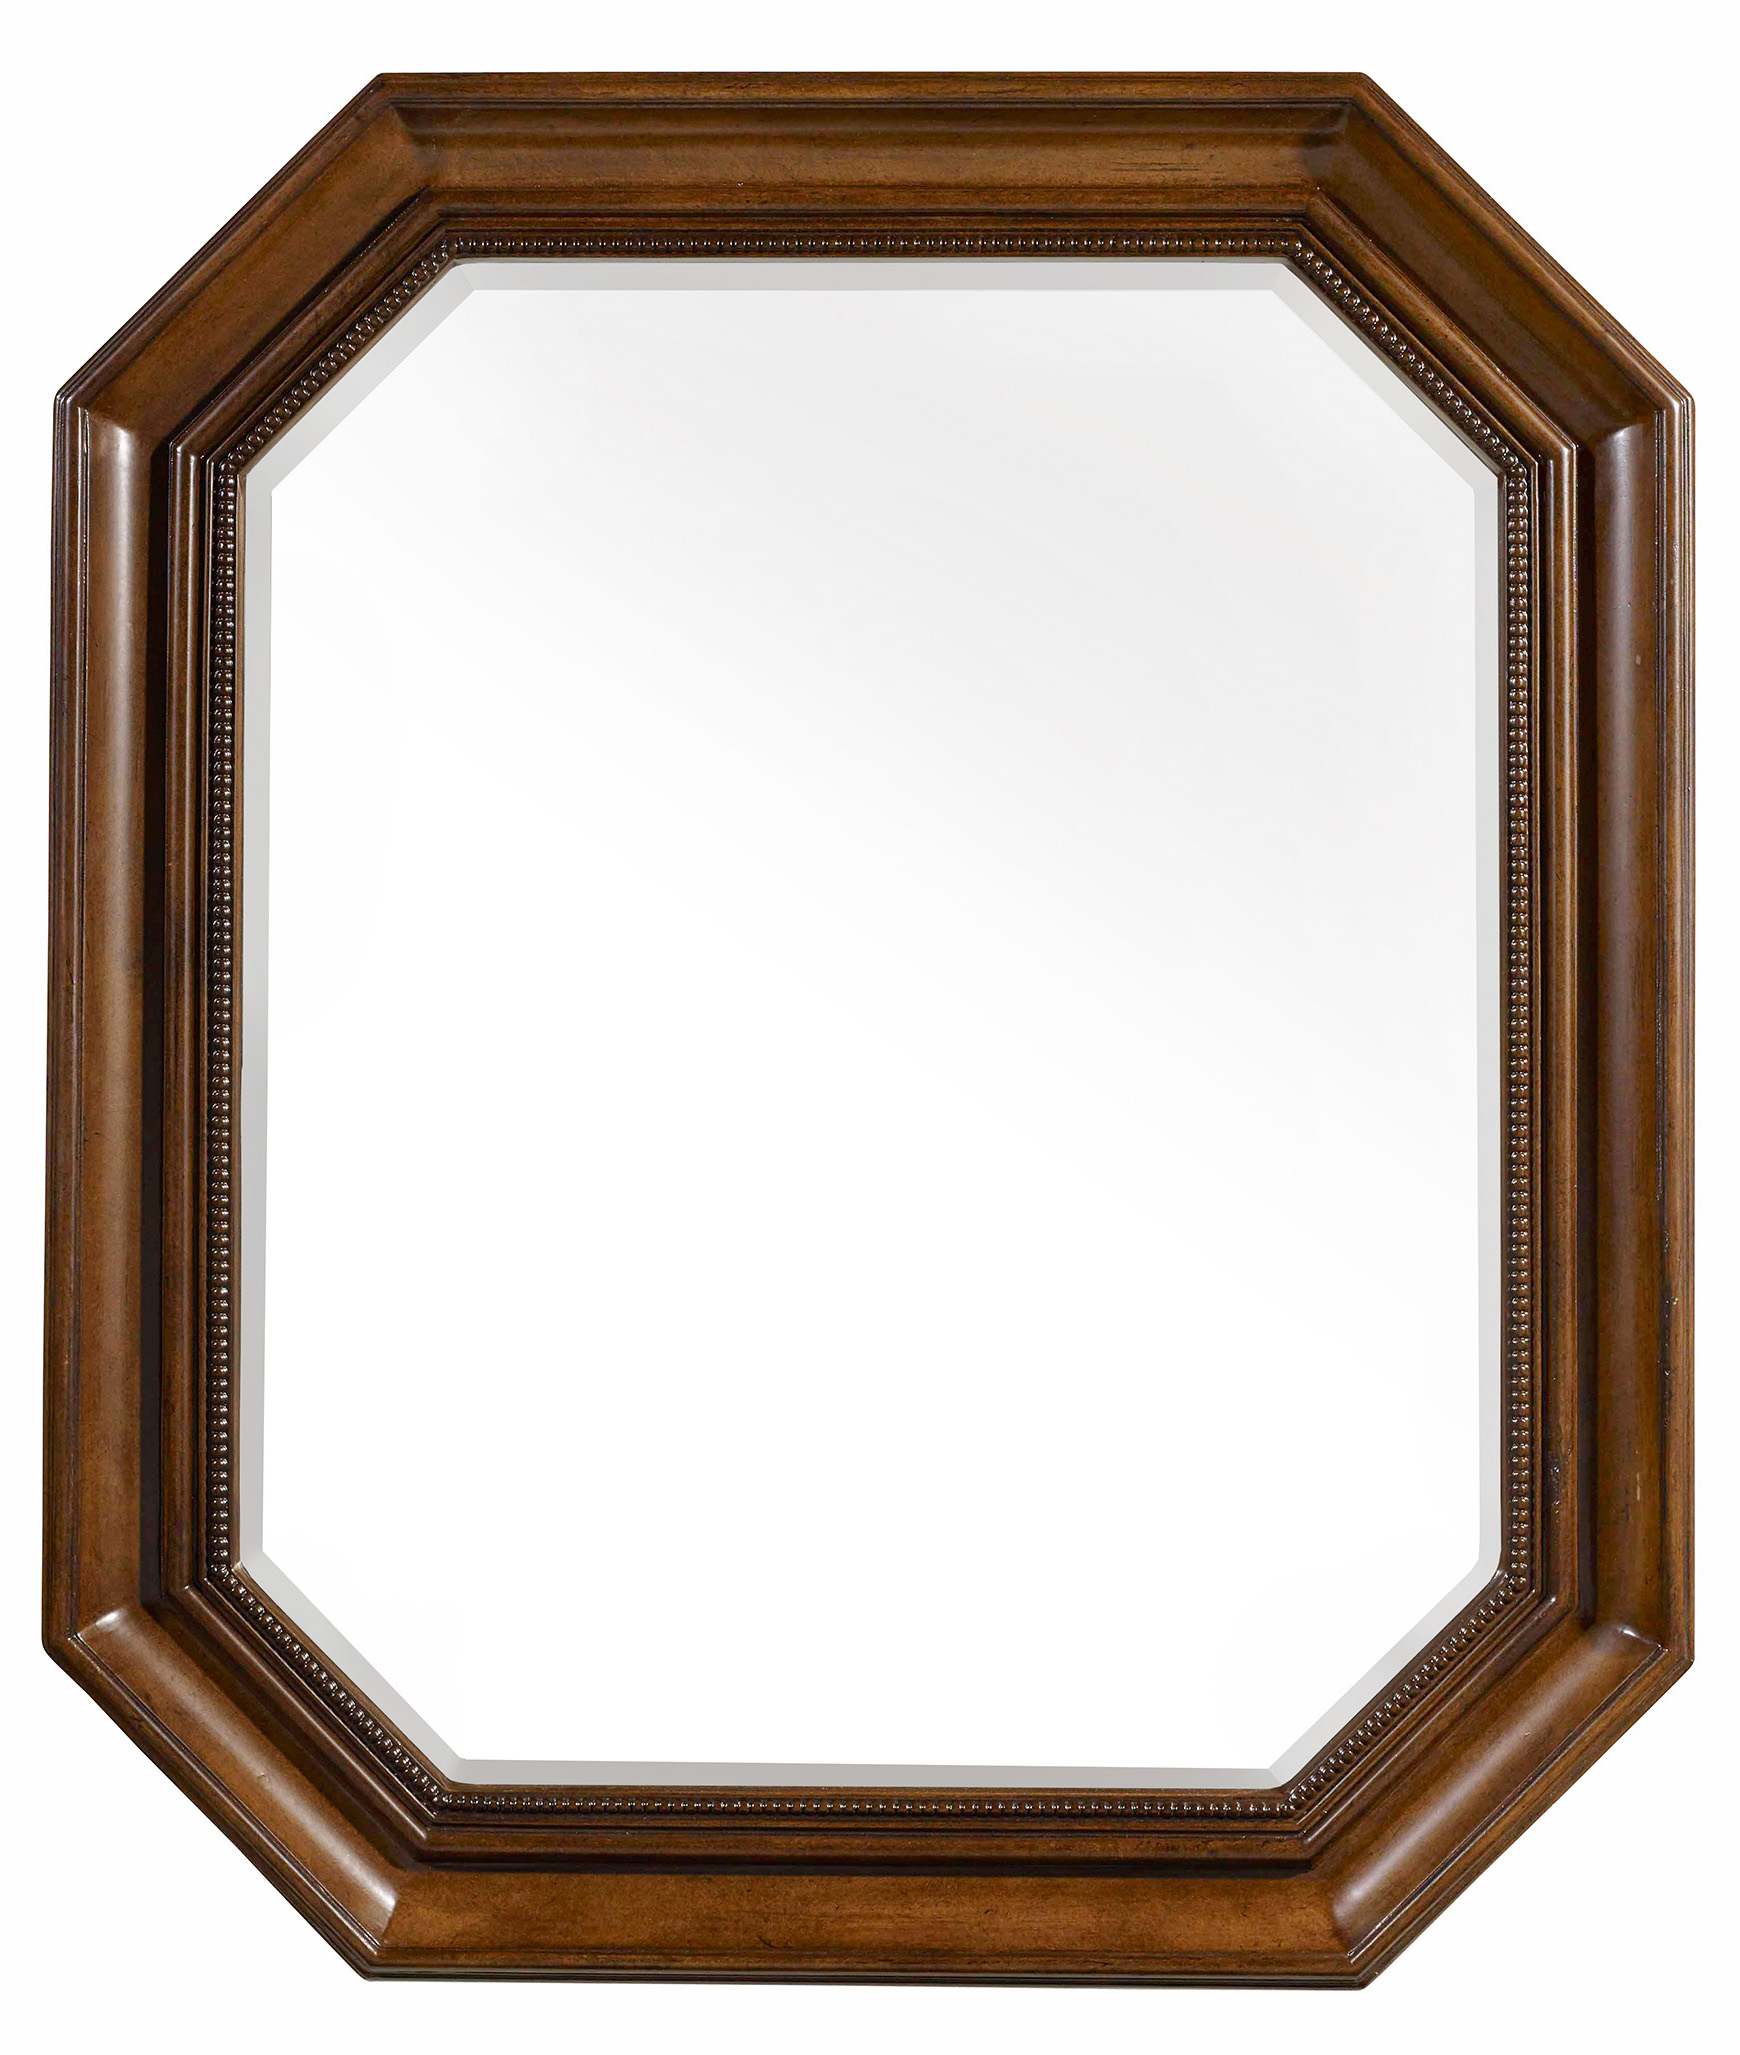 Hamilton Home Sentinel: Pecan Portrait Mirror - Item Number: 5447-90008